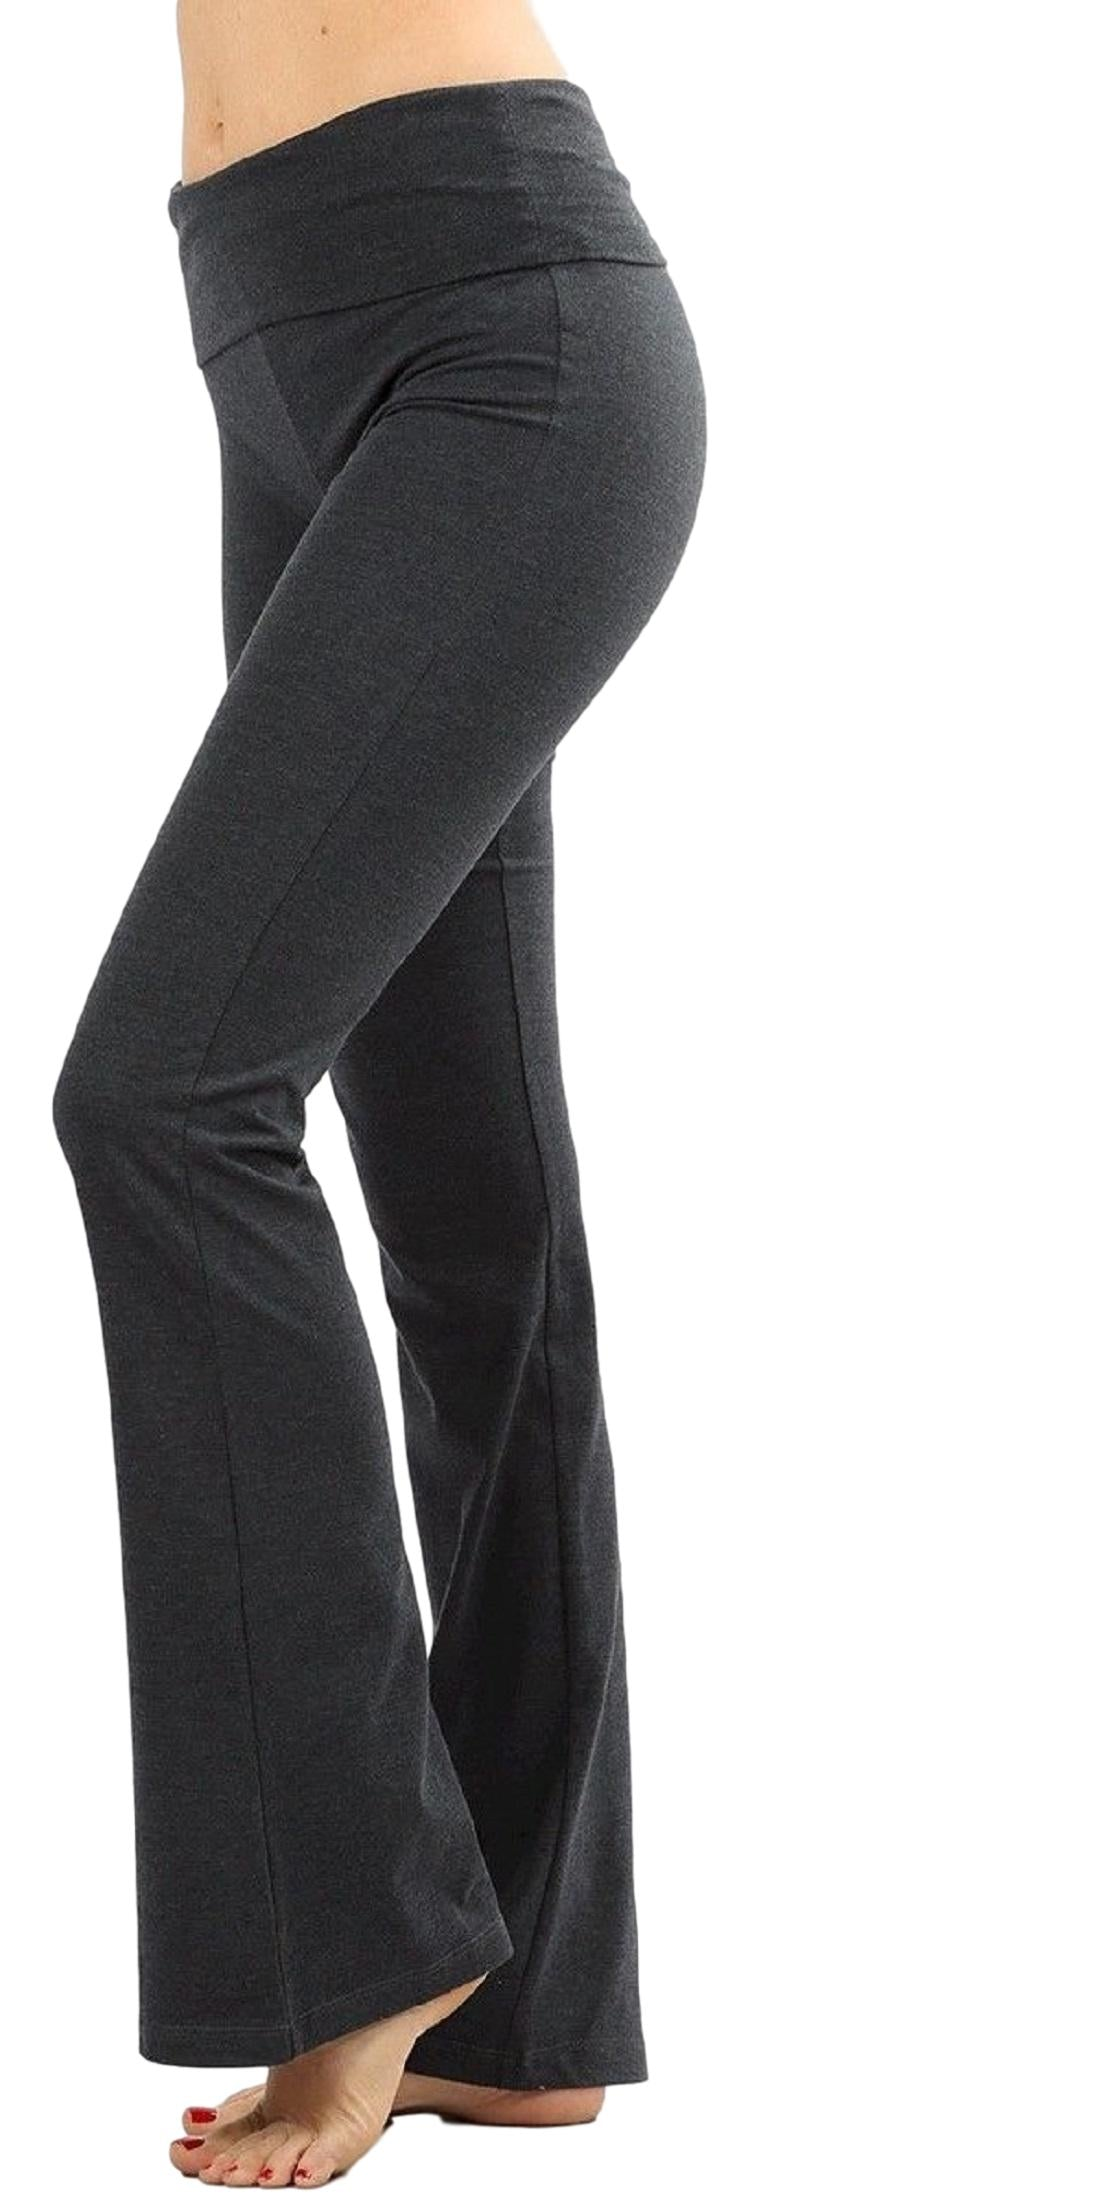 Zenana Women Plus Size Fold Over Waist Cotton Stretch Flare Leg Boot Cut Yoga Pants Leggings Charcoal